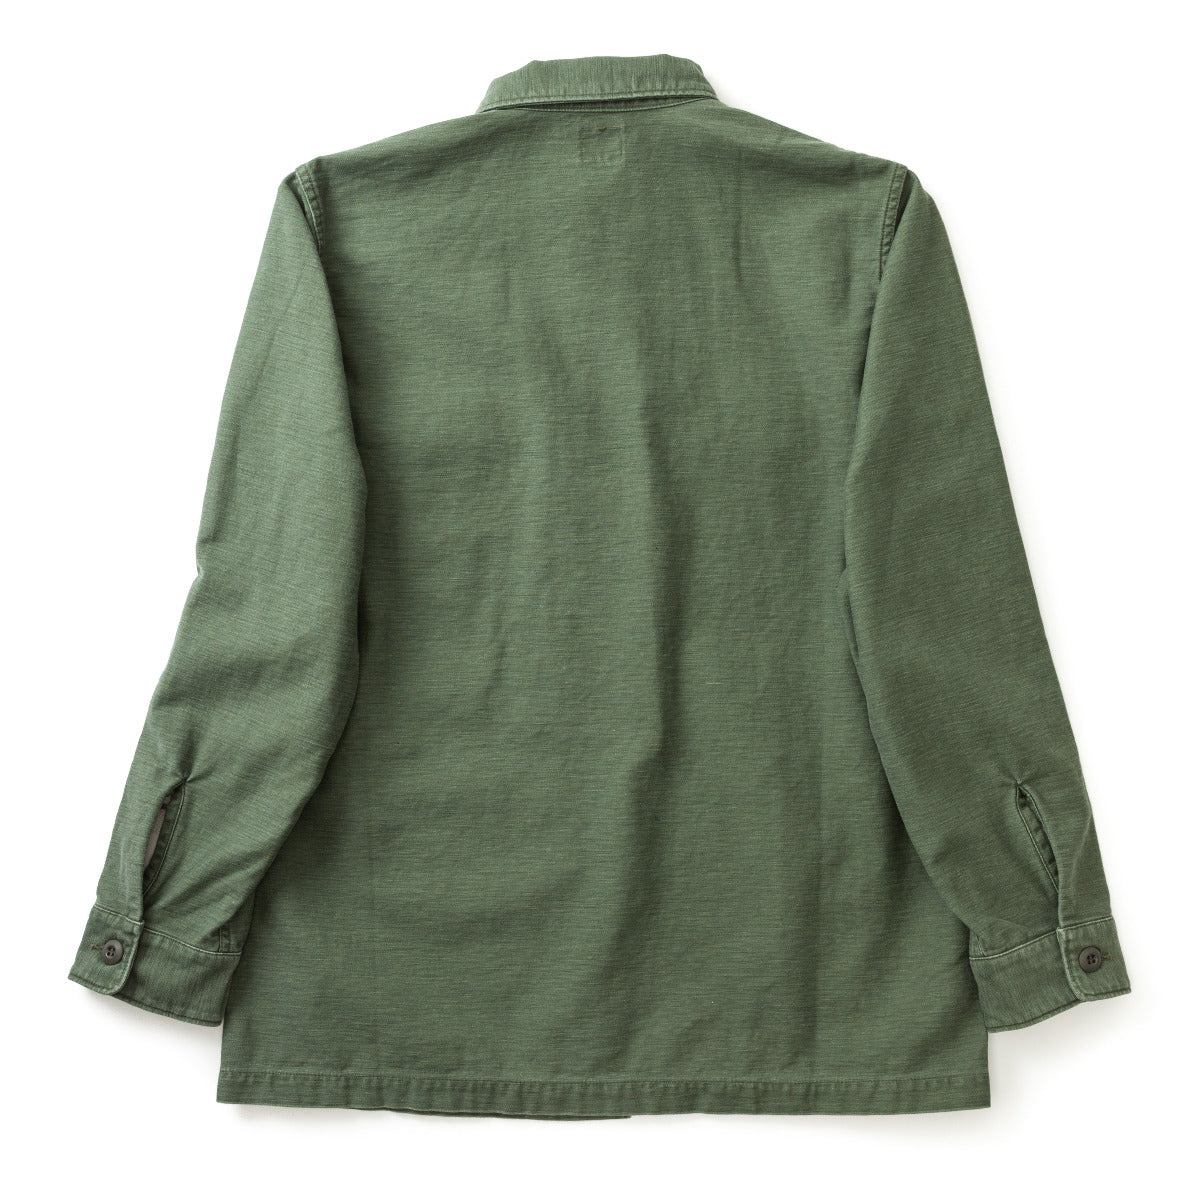 Orslow US Army Shirt Green